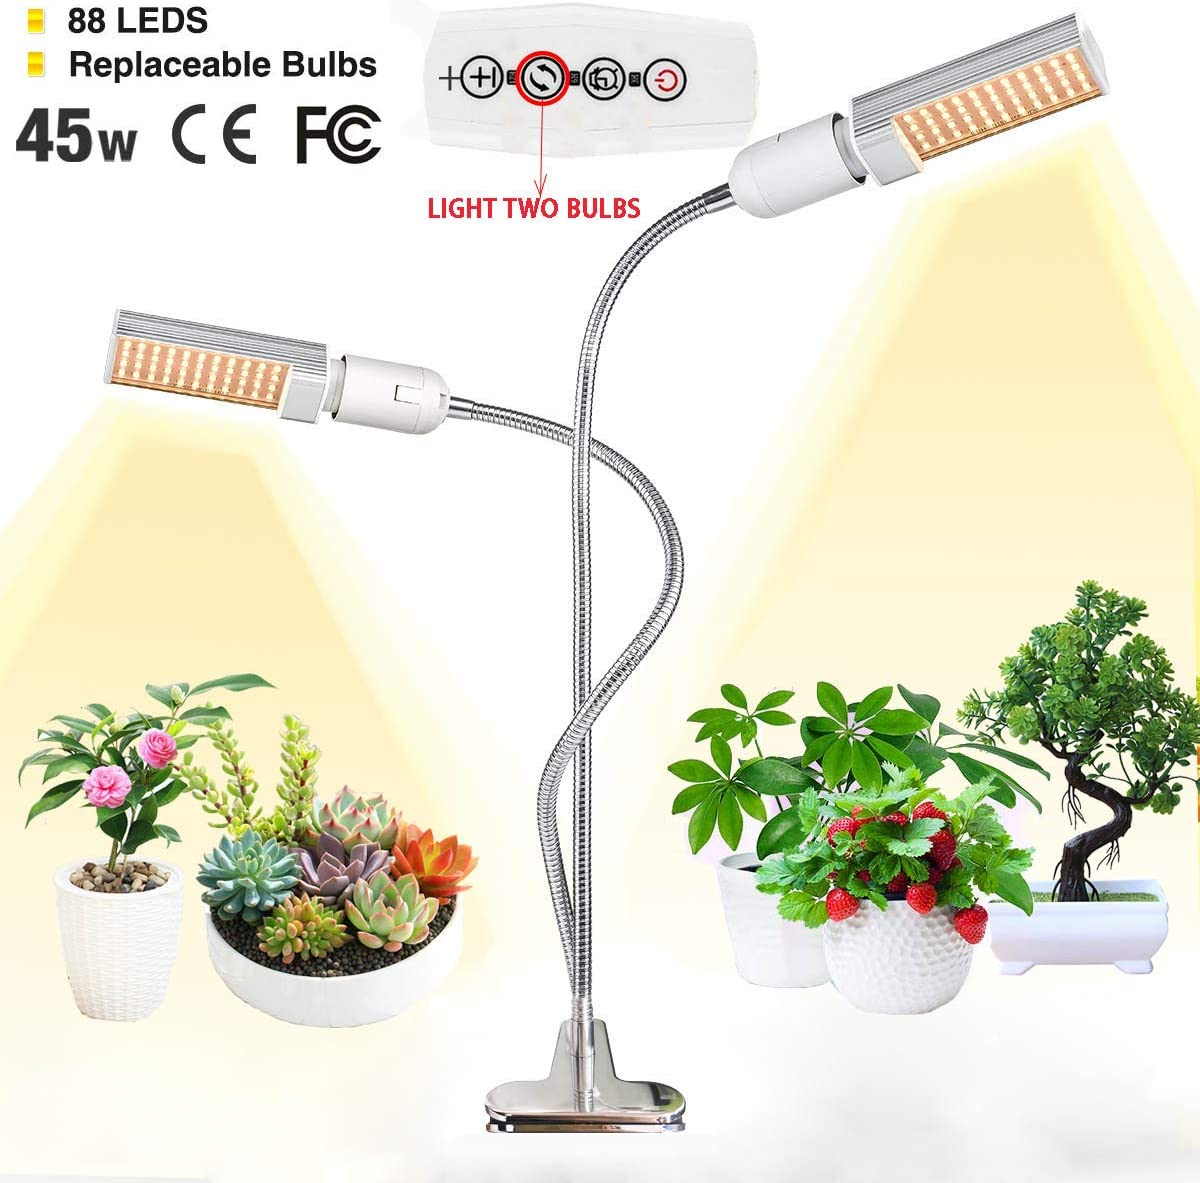 LED Grow Light for Indoor Plant,LINKO 45W Sunlike Full Spectrum Grow Bulbs Lamps,Plant Grow Light with Replaceable Bulb with Newest Auto Timer, 3 6 12H Timing, Professional for Seedling Growing Bloo